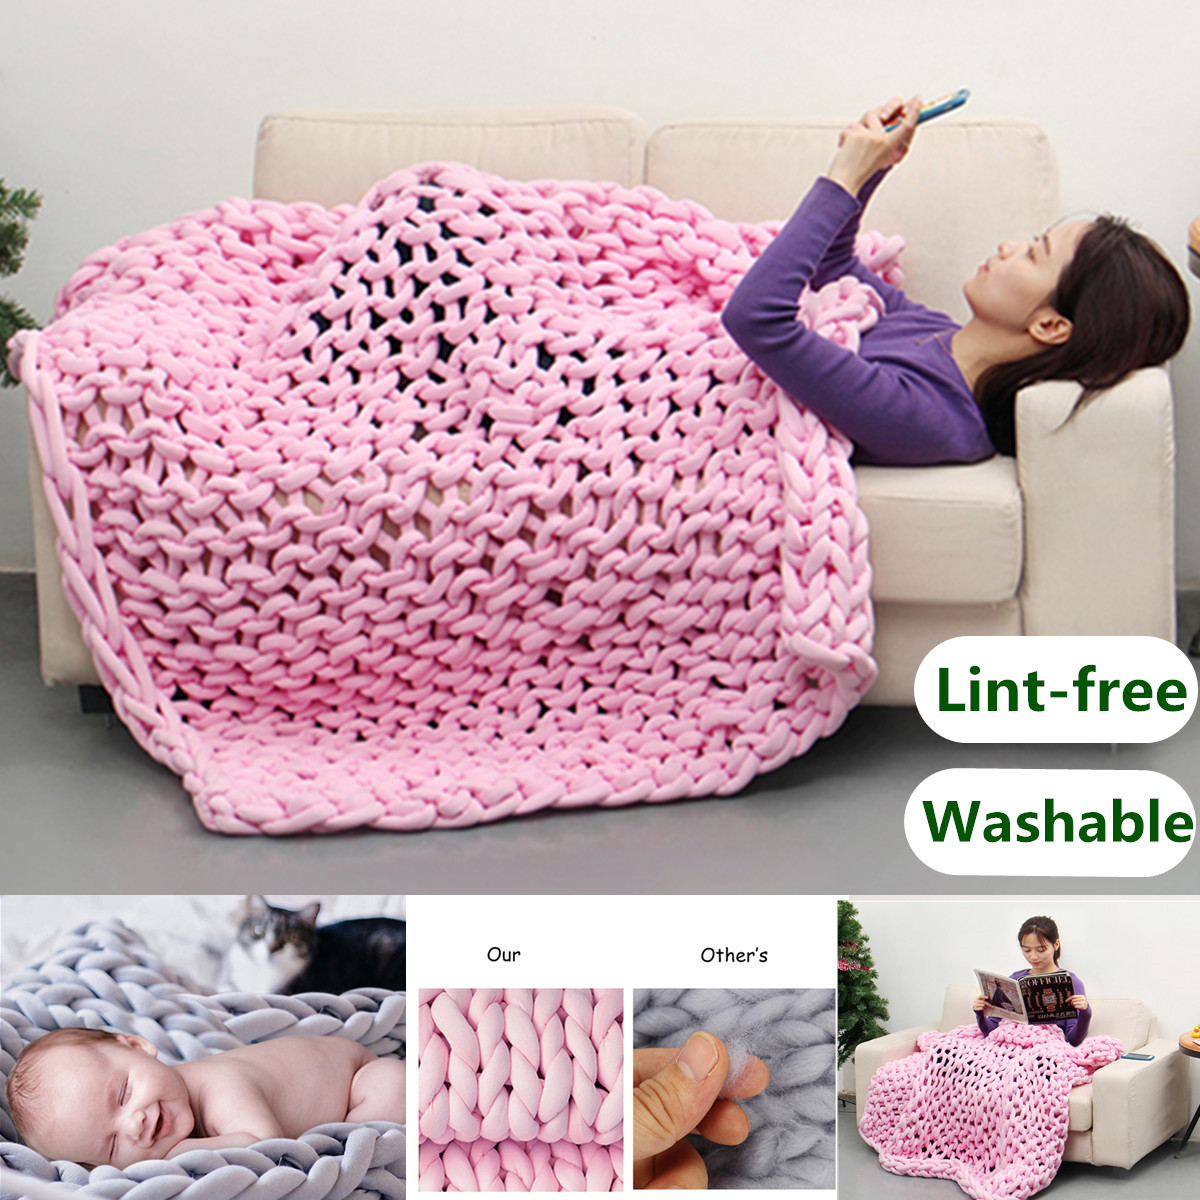 Hand-woven Cotton Soft Chunky Knitted Blanket Bulky Thick Yarn Bed Sofa Throw Rug - Machine Washable & Lint-free